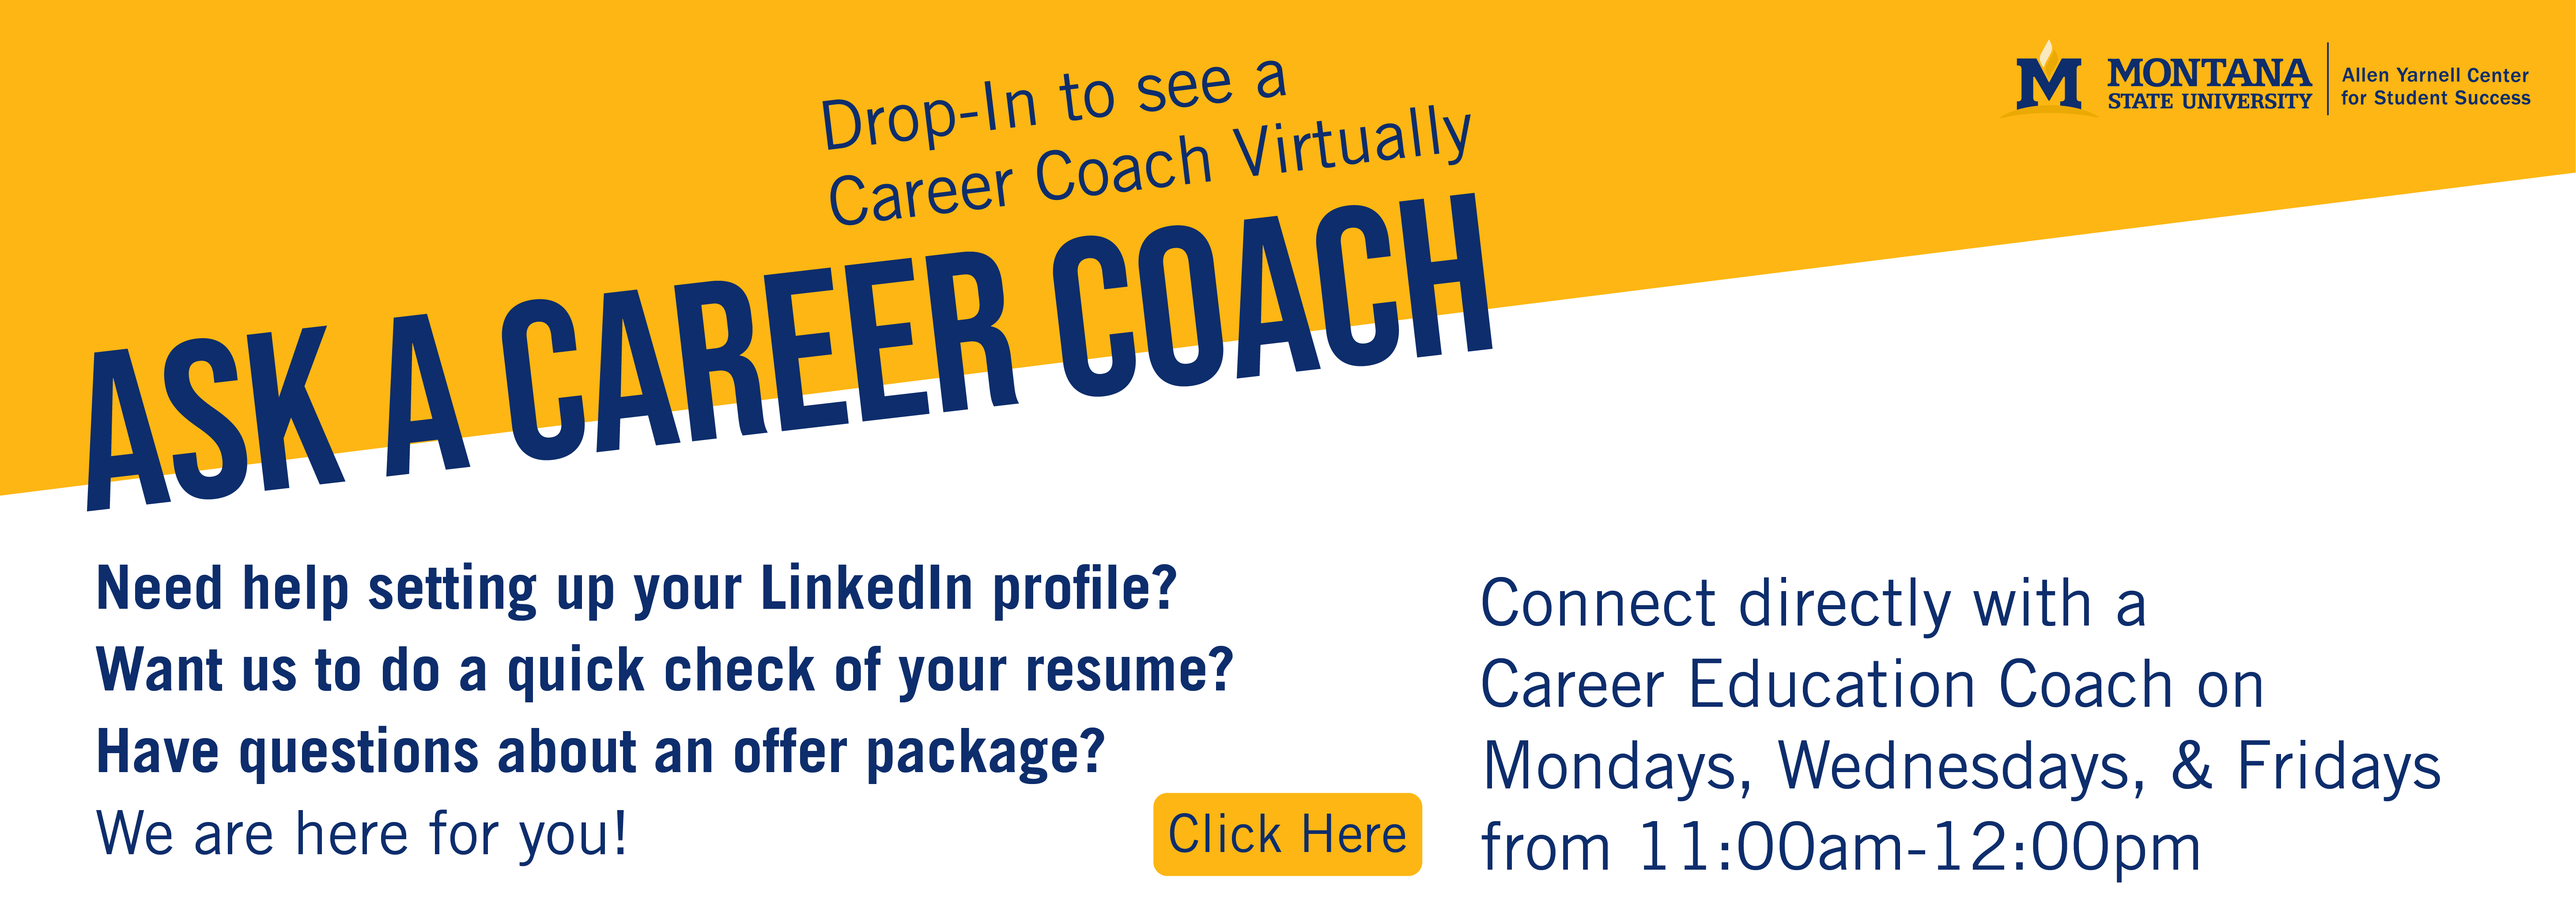 Drop-in and Ask a career coach virtually monday, Wednesday and Friday 11-12pm